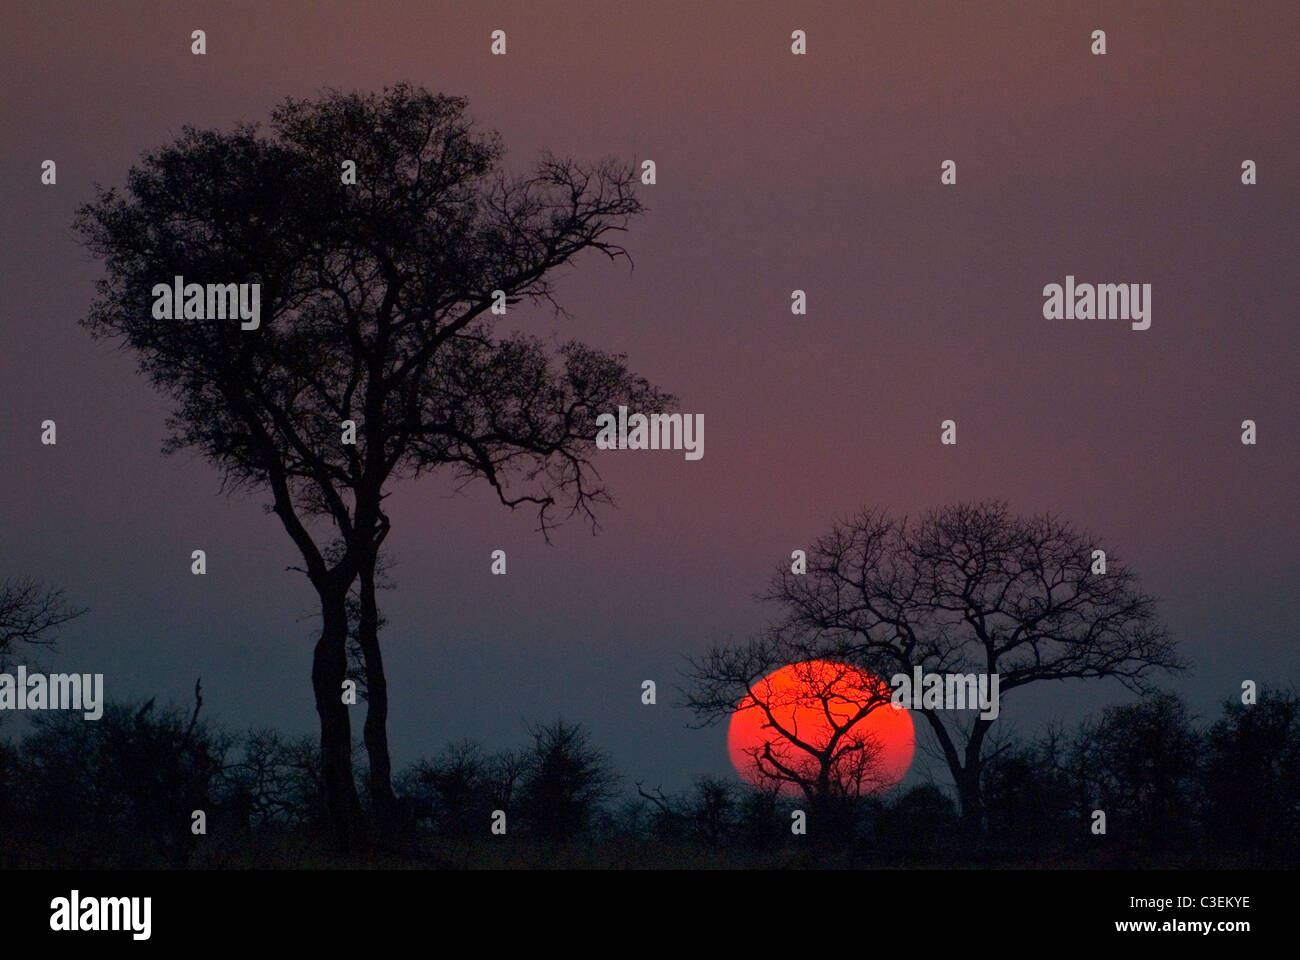 South African landscapes include desert, grassland, Bushveld and mountains. Red sun in smoky Kruger park, tree silhouette - Stock Image